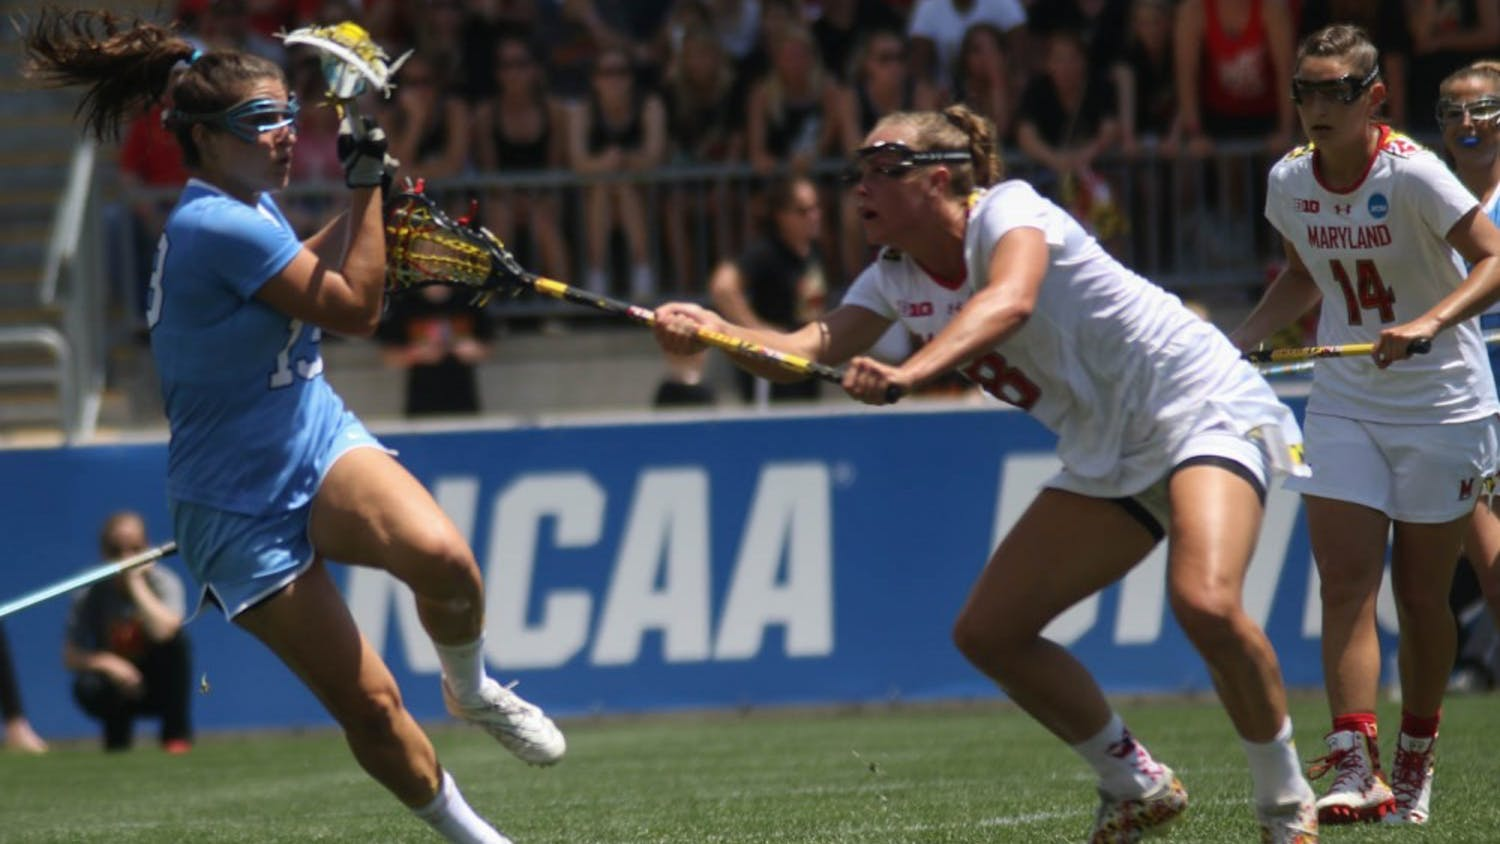 UNC midfielder Sammy Jo Tracy (13) pulls the ball back from a Maryland defender. The North Carolina women's lacrosse team defeated Maryland 13-7 to capture the NCAA championship on Sunday at Talen Energy Stadium in Chester, PA.